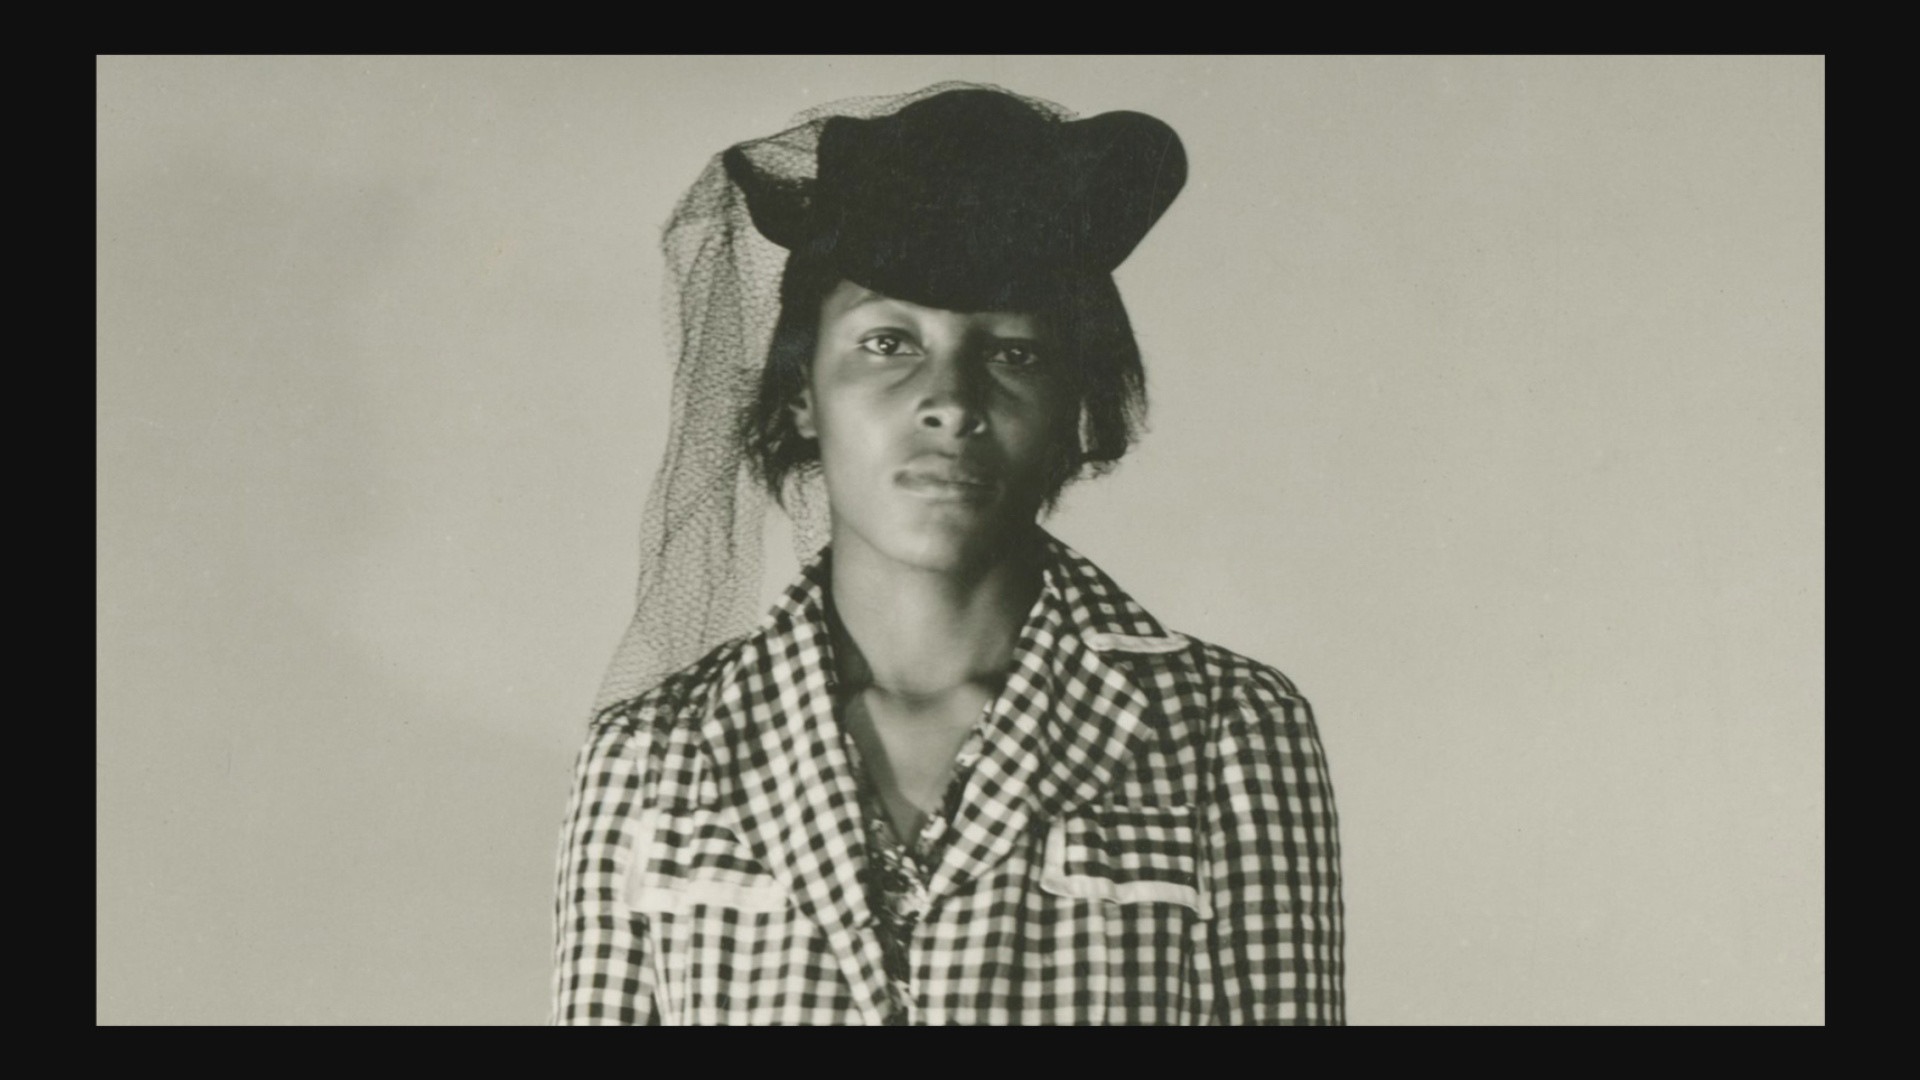 The Rape of Recy Taylor. 2017. USA. Directed by Nancy Buirski. Courtesy of the filmmaker.